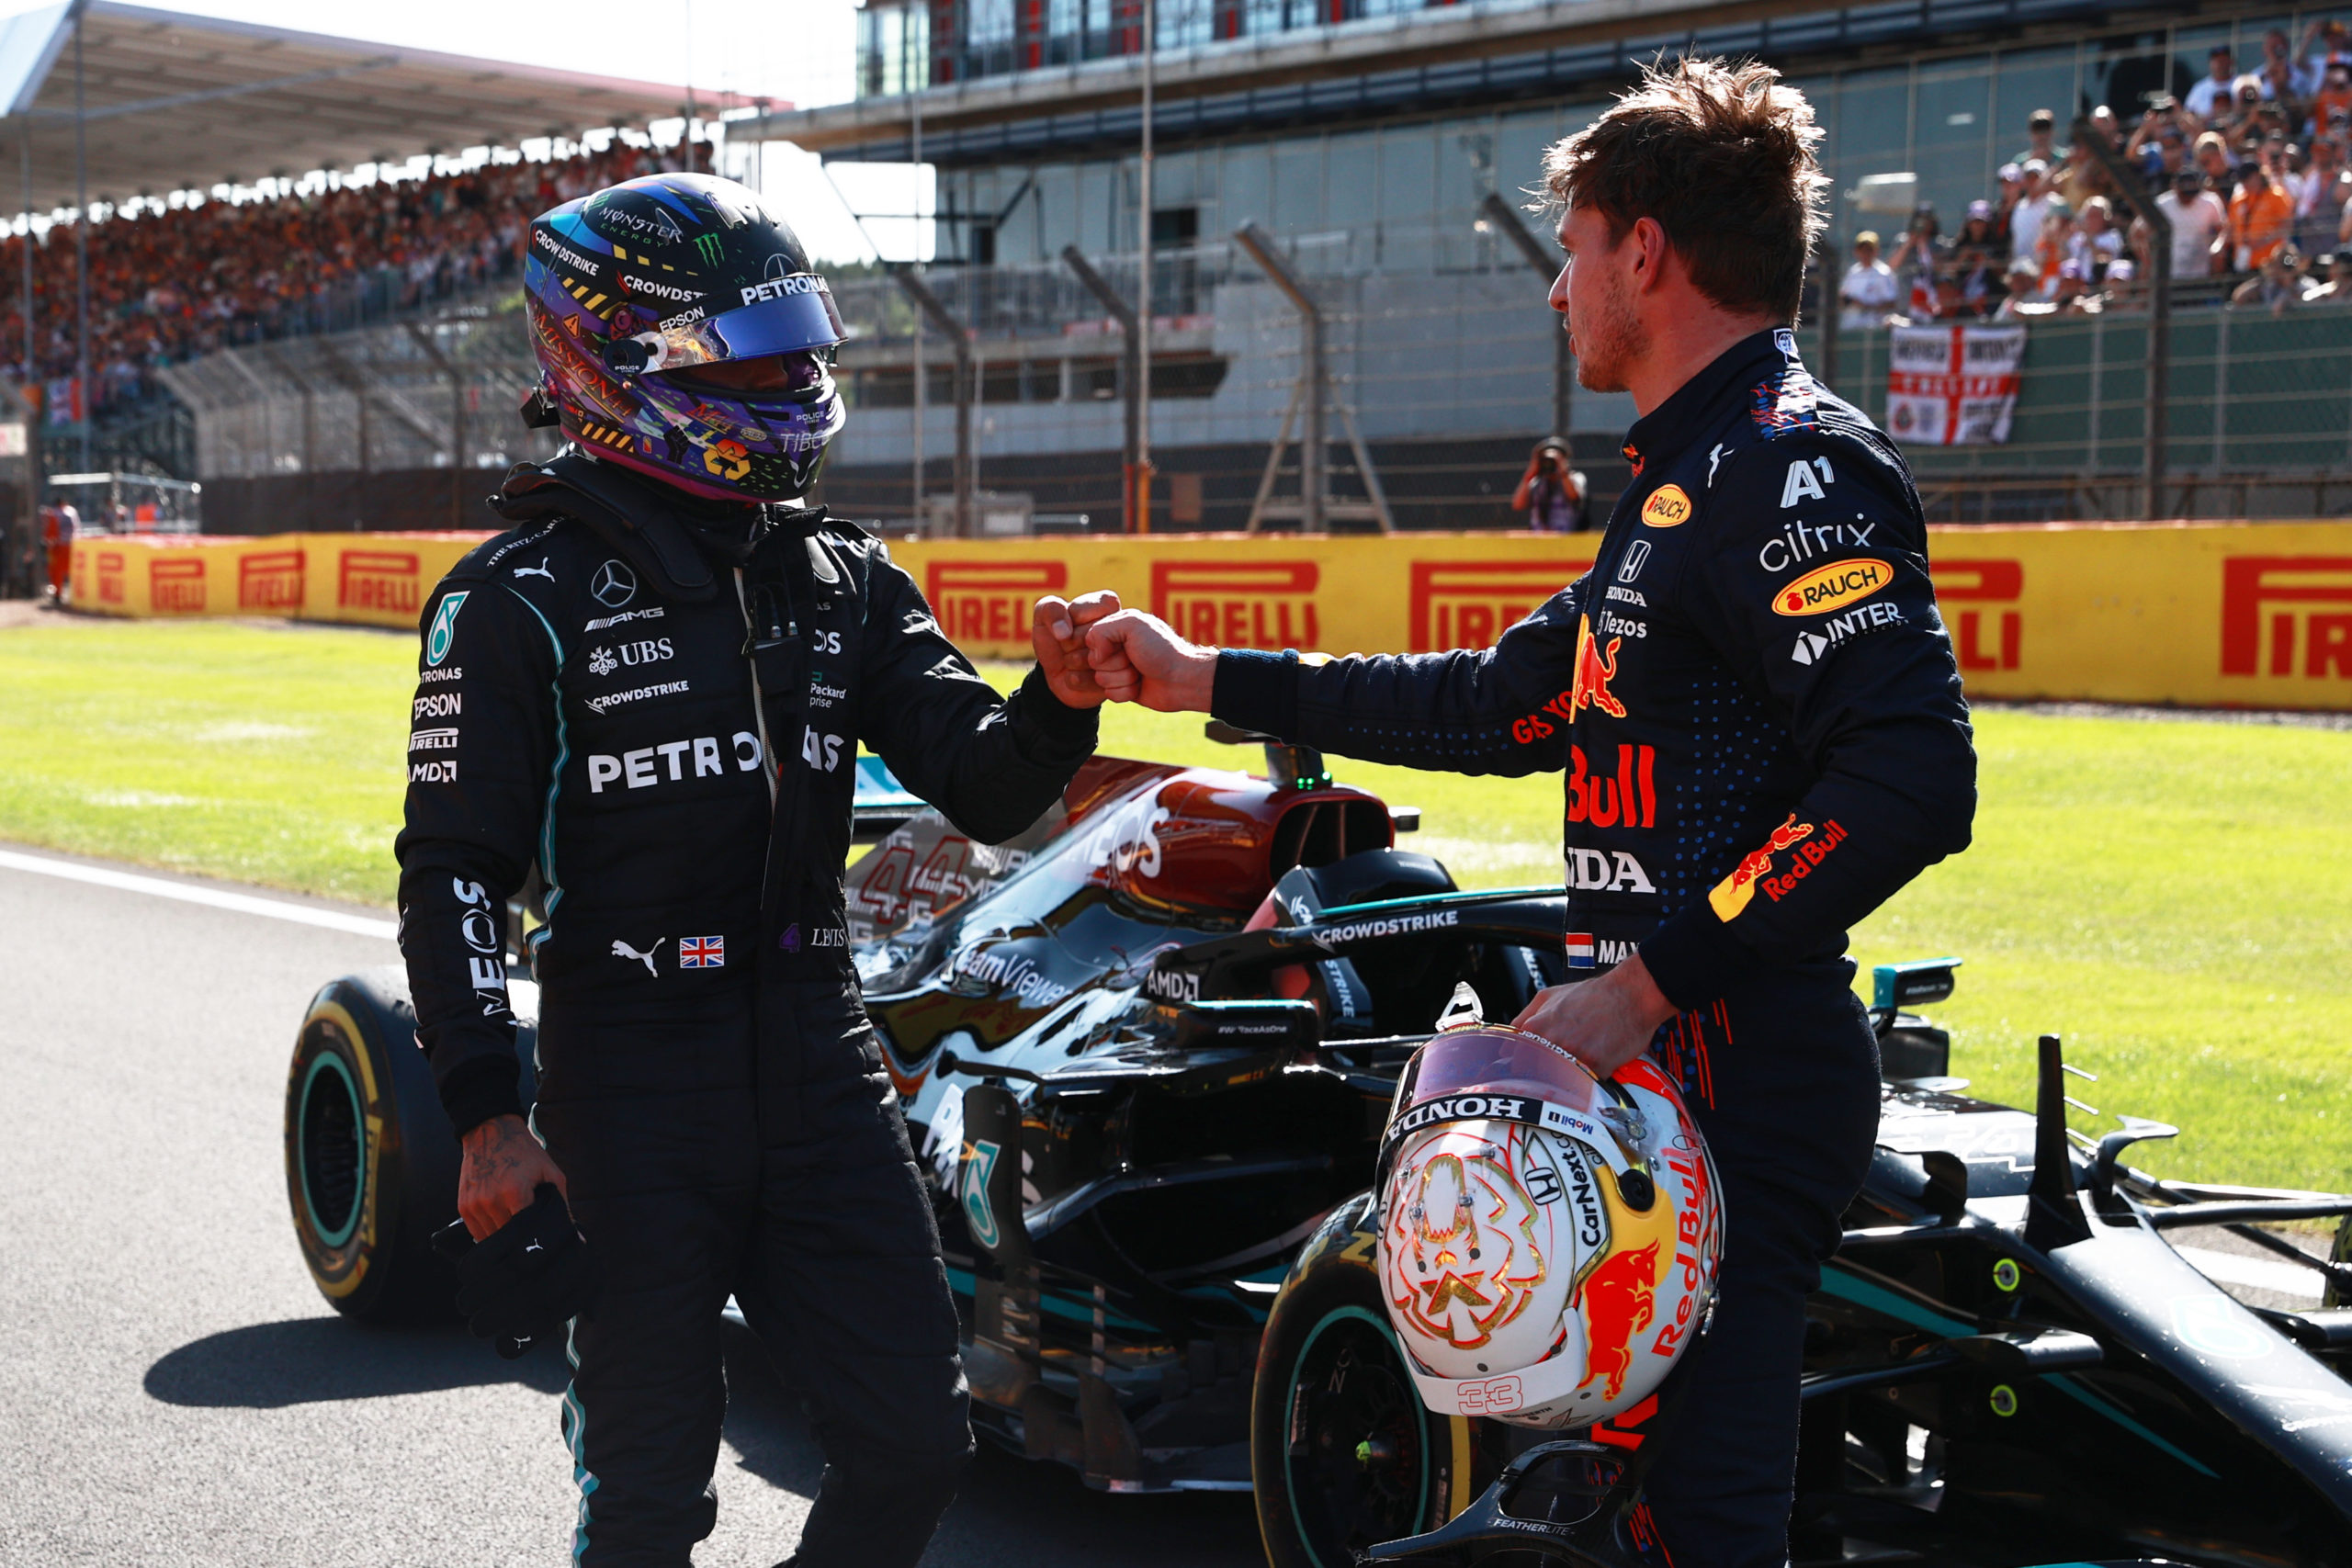 NORTHAMPTON, ENGLAND - JULY 17: Winner Max Verstappen of Netherlands and Red Bull Racing and second placed Lewis Hamilton of Great Britain and Mercedes GP bump fists in parc ferme during the Sprint for the F1 Grand Prix of Great Britain at Silverstone on July 17, 2021 in Northampton, England. (Photo by Mark Thompson/Getty Images) // Getty Images / Red Bull Content Pool  // SI202107170319 // Usage for editorial use only //